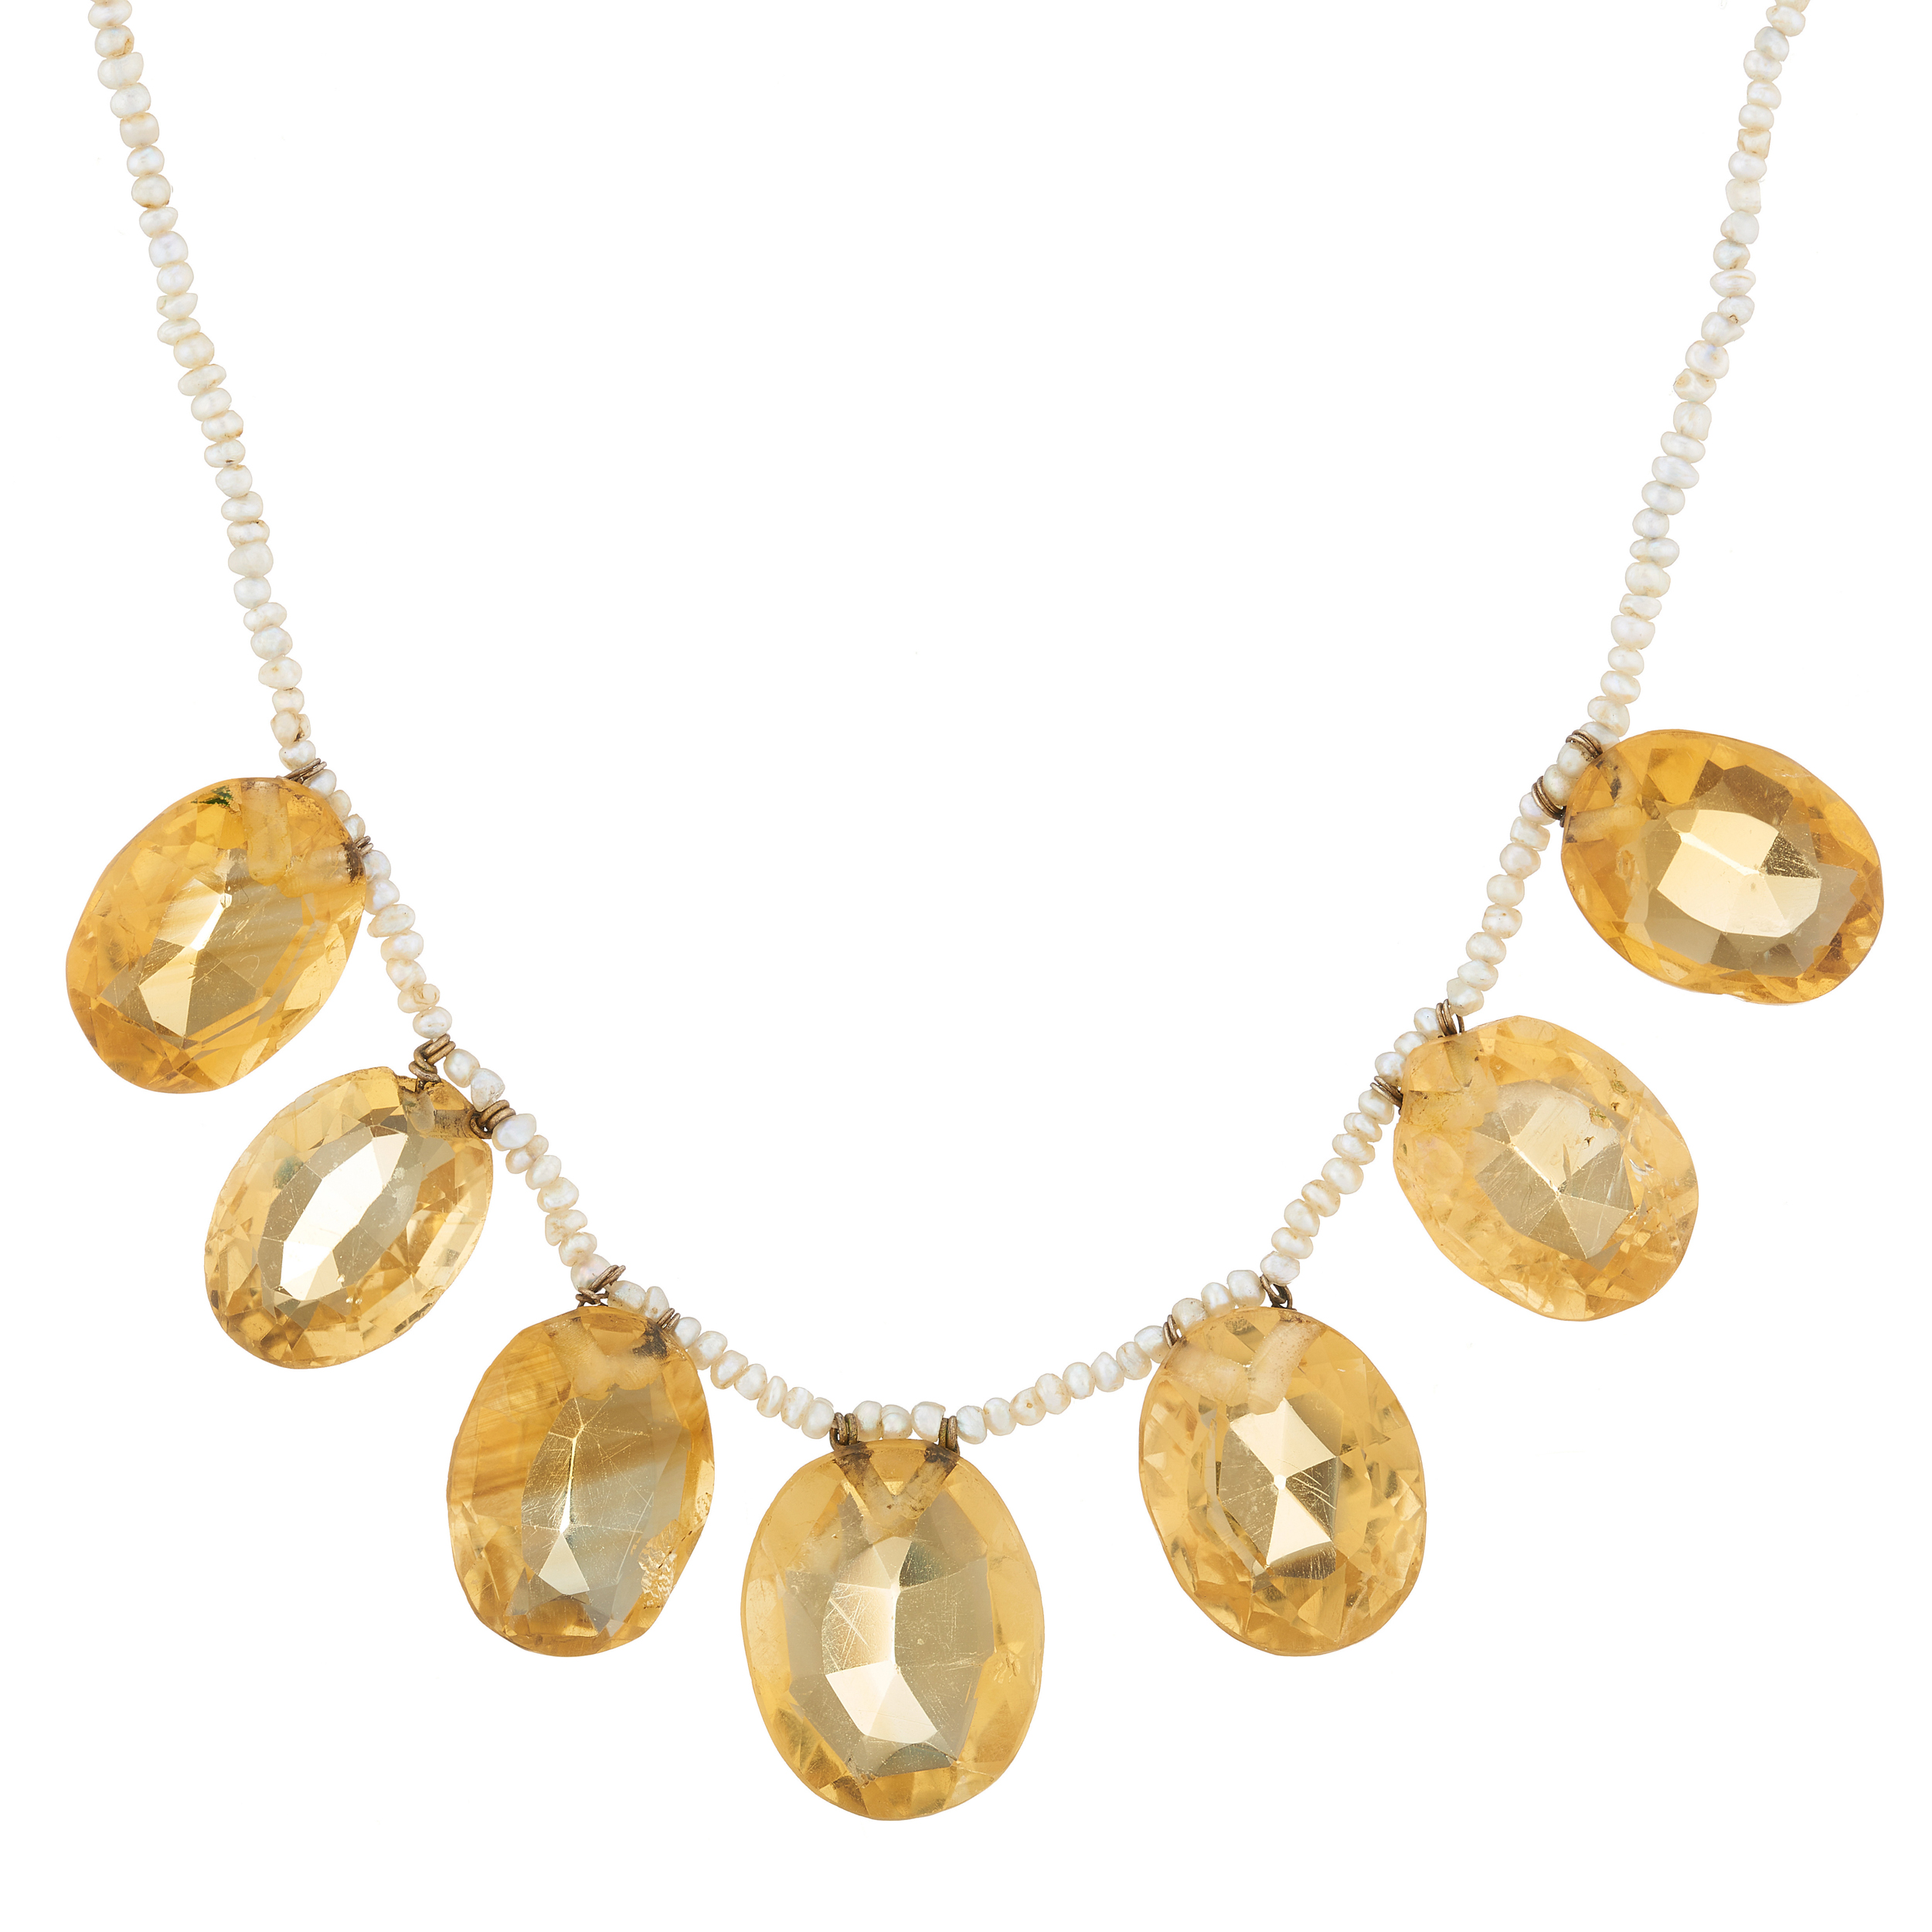 An early 20th century citrine and seed pearl fringe necklace, with gold clasp